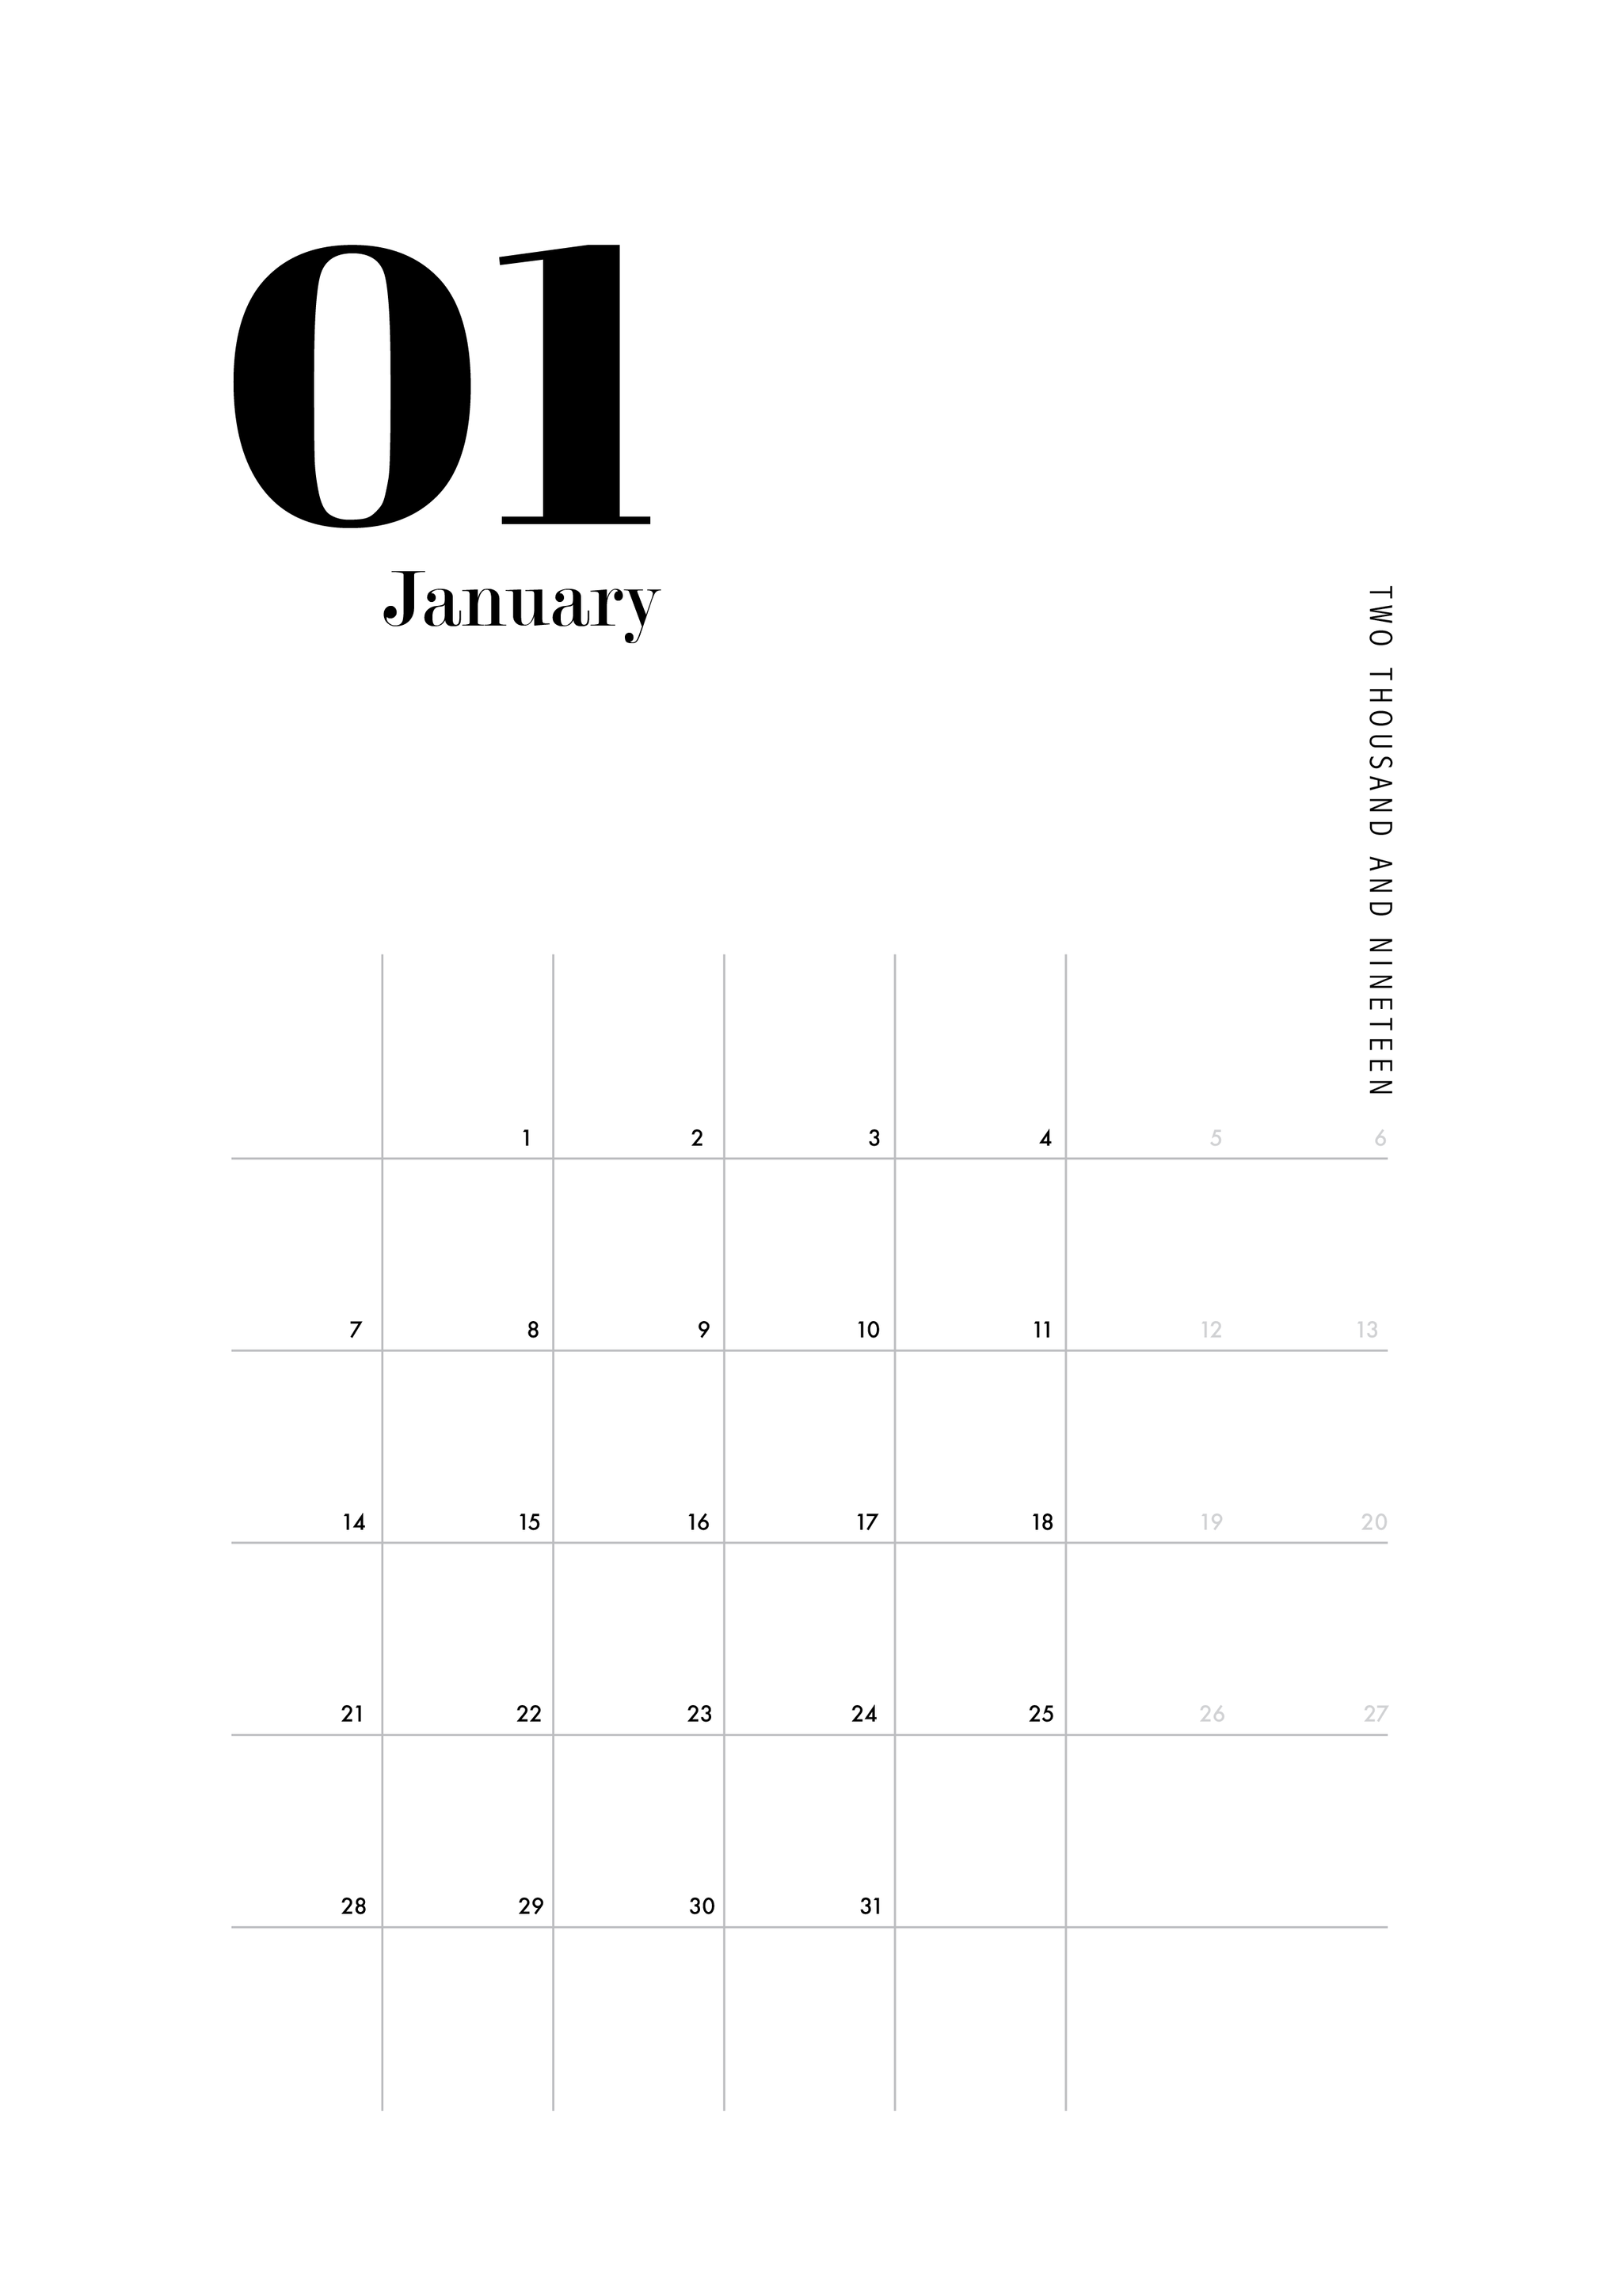 image about Printable Calendar Numbers titled PRINTABLE CALENDAR clic figures, minimalistic, printable, A4 downloadable, Jan- Dec, Scandinavian layout, typography, yr planner, black and white